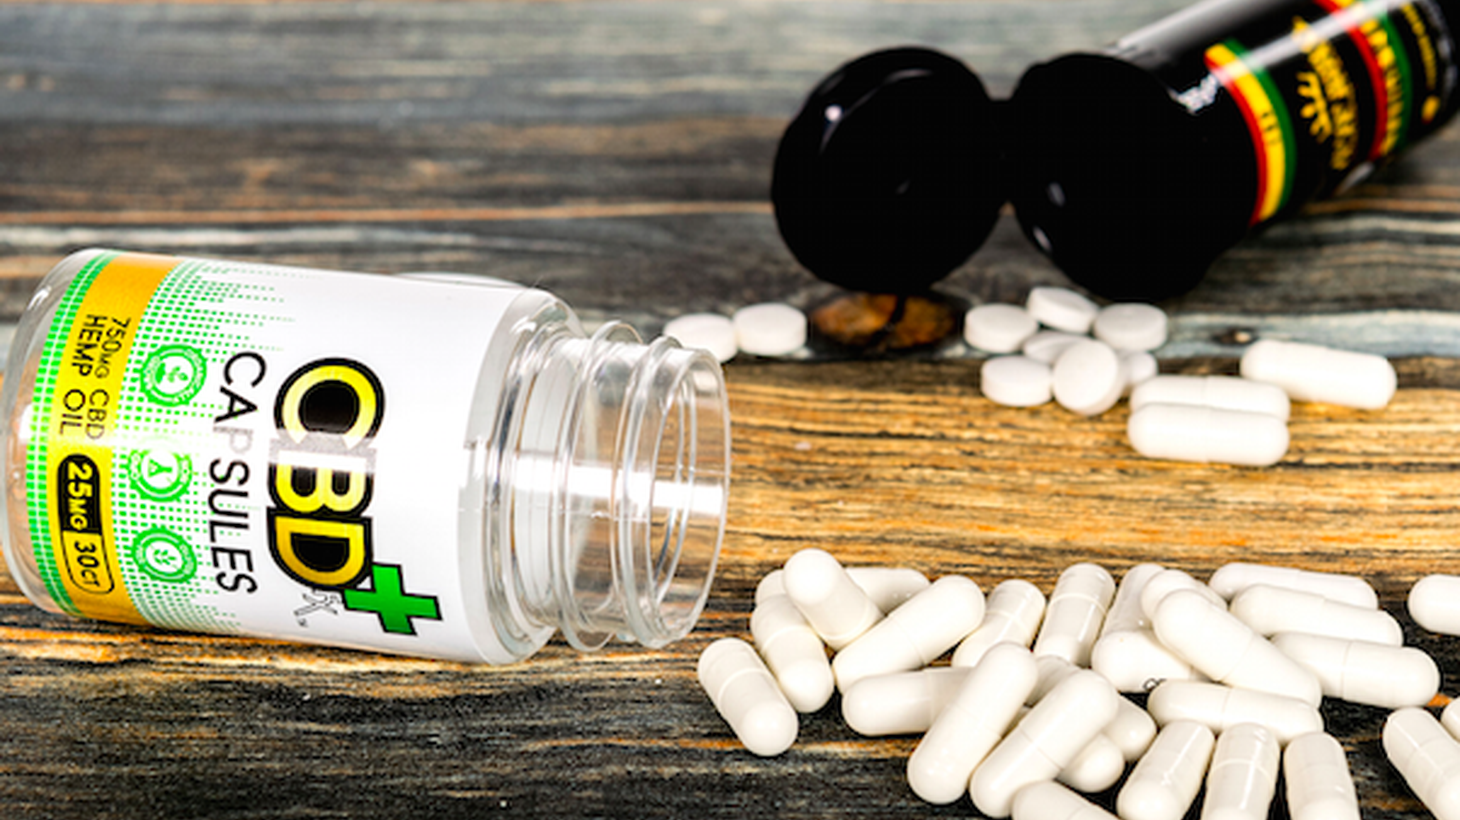 CBD is a cannabis extract that doesn't make you high. You can buy it as a balm, spray, mint, or oil. It's not cheap -- a CBD lotion or oil can set you back $50-$80.